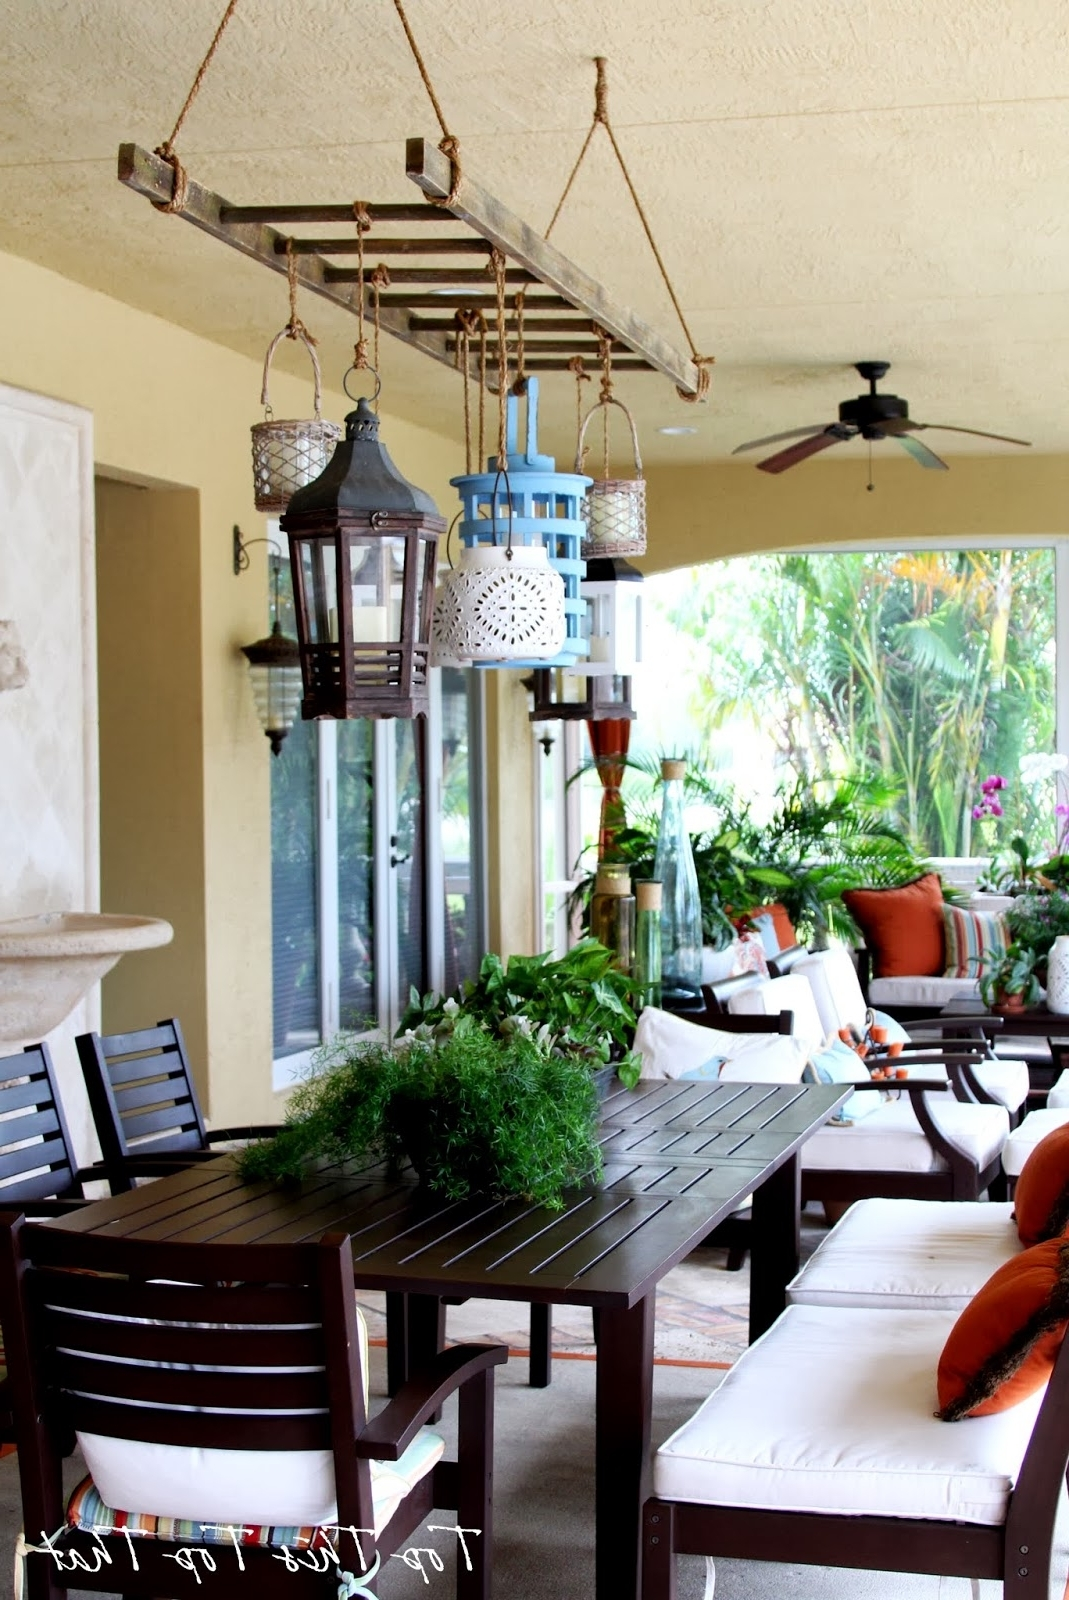 Favorite Outdoor Hanging Lanterns For Patio With Regard To Outdoor Hanging Lanterns For Patio Decorate Ideas Simple At Lantern (View 7 of 20)